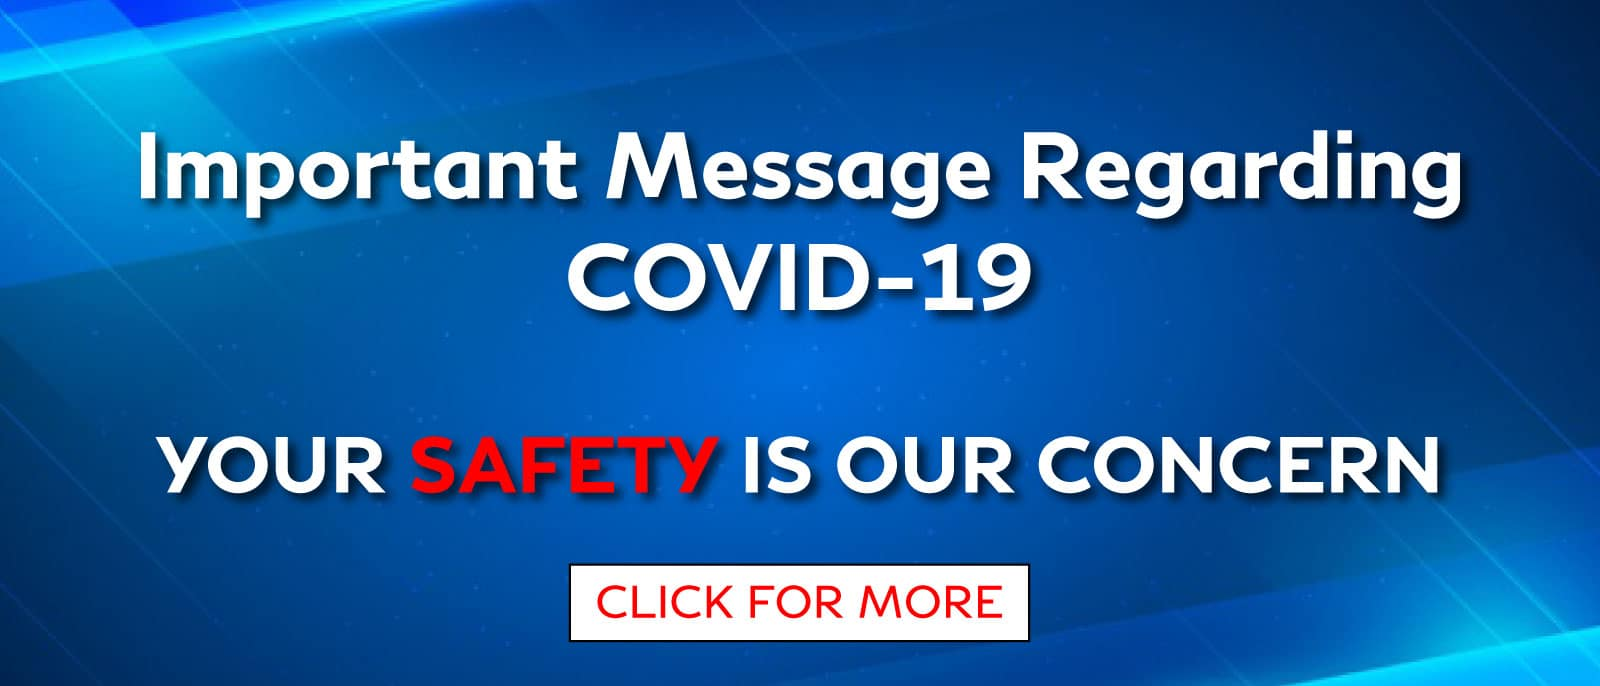 Important Message Regarding COVID-19. Your Safety Is Our Concern.